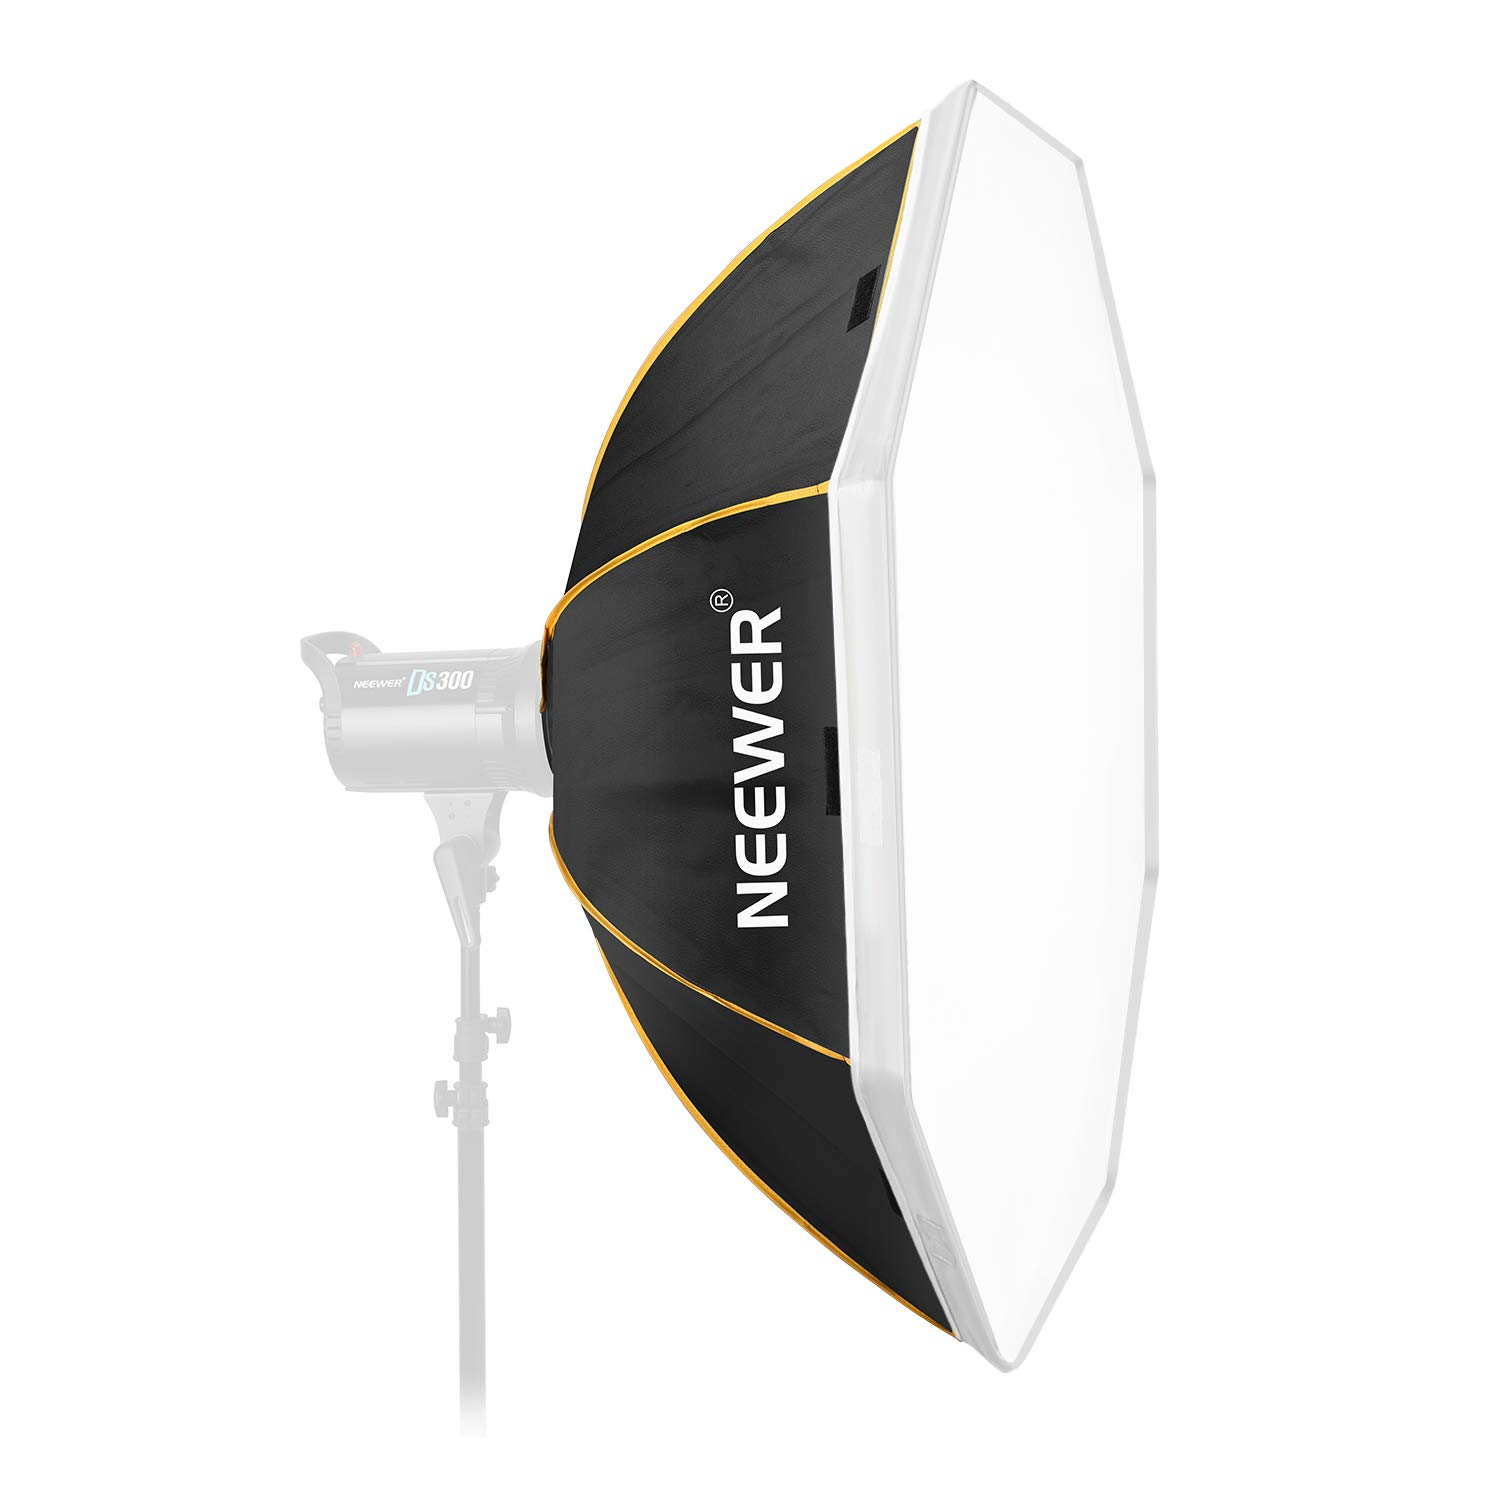 Neewer 36 inches/90 Centimeters Octagon Softbox with Bowens Mount Speedring and Bag Compatible with Studio Strobe Flash Monolight for Portrait and Product Photography by Neewer